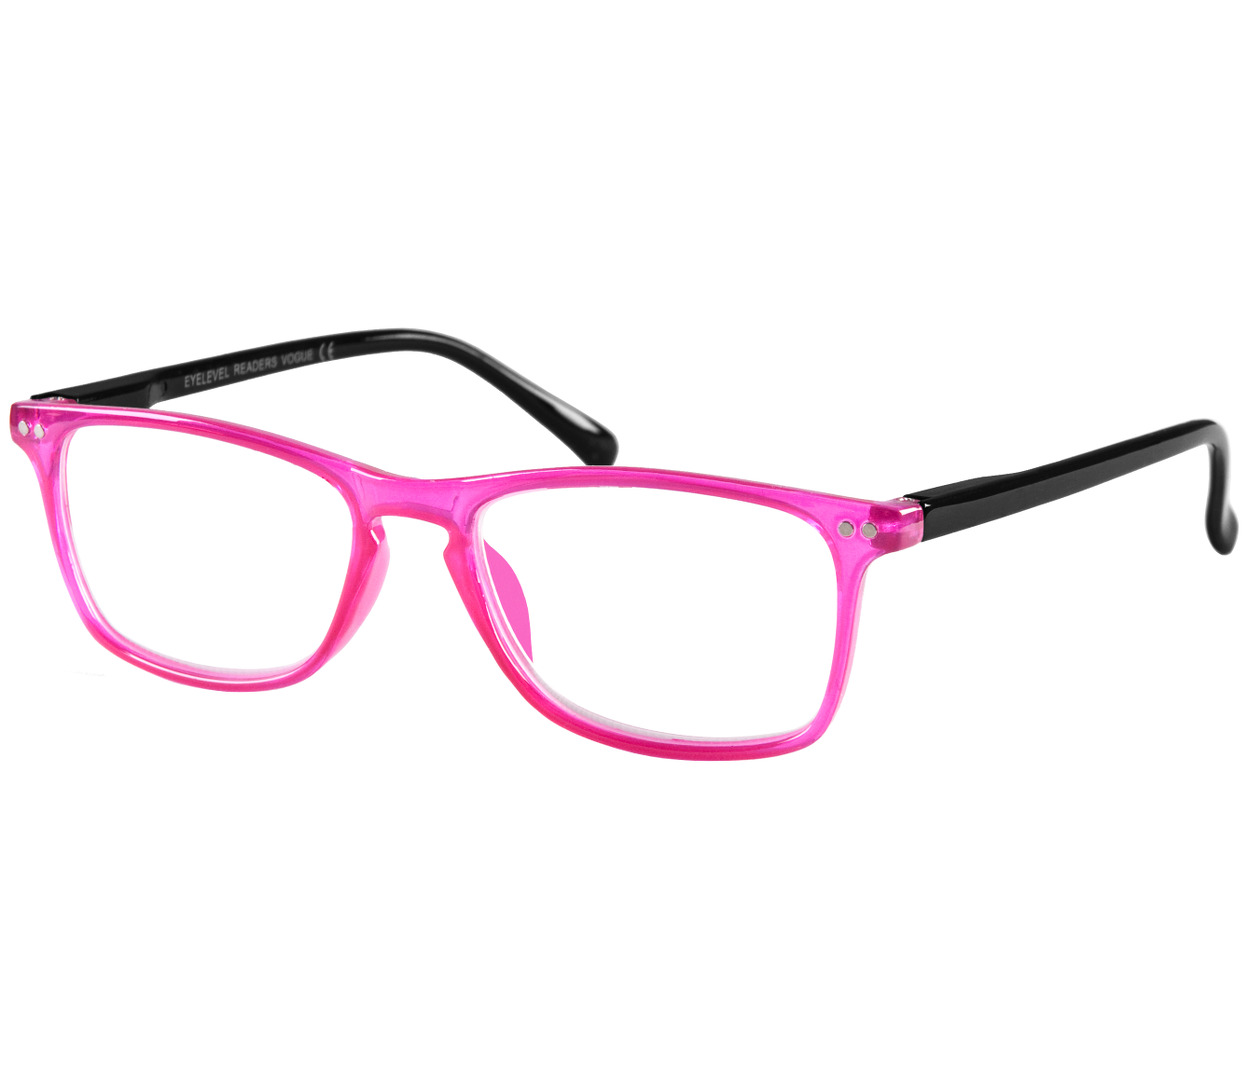 Vogue (Pink) Retro Reading Glasses